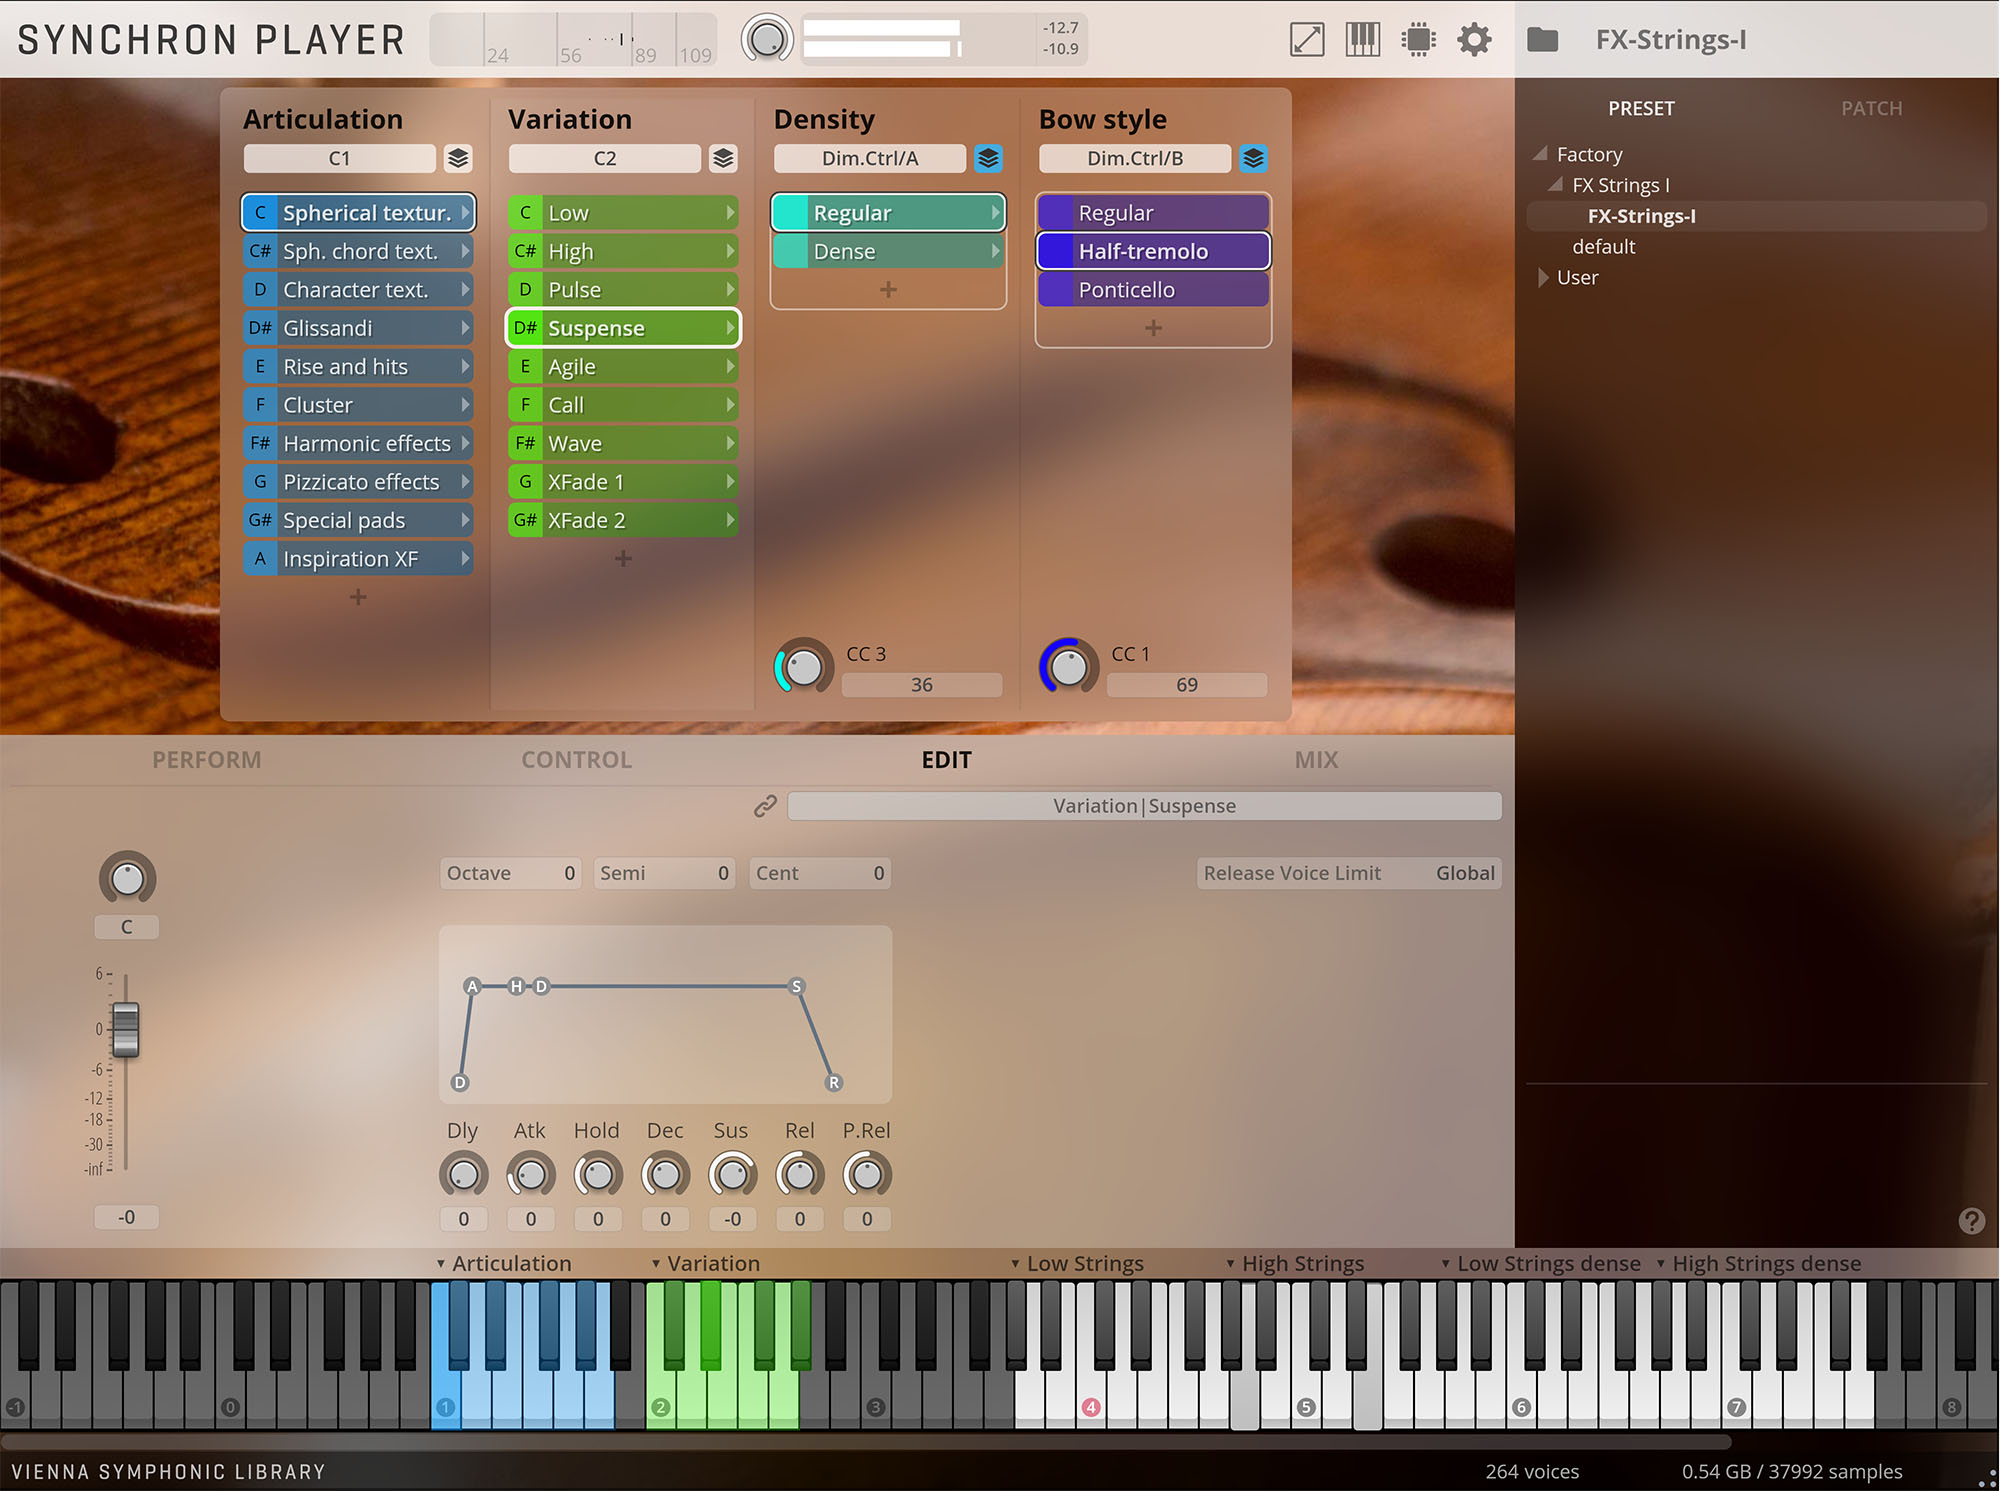 Synchron Player free rompler by Vienna Symphonic Library (VSL)